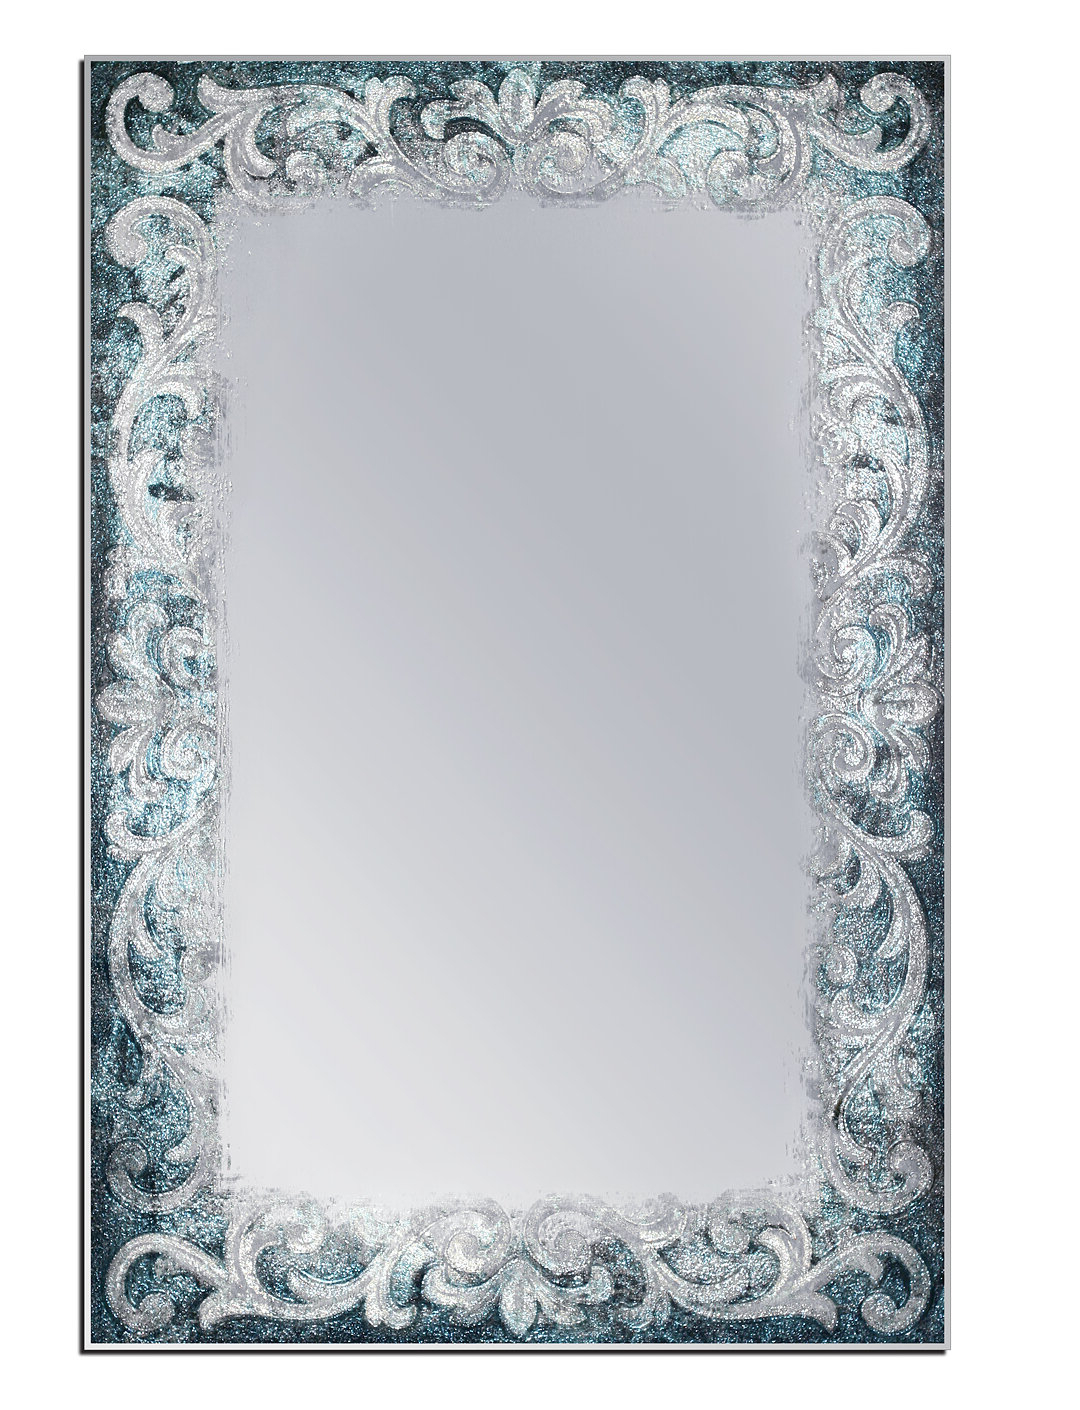 2020 Koppel Tapestry Coastal Venetian Wall Mirror With Regard To Coastal Style Wall Mirrors (View 8 of 20)